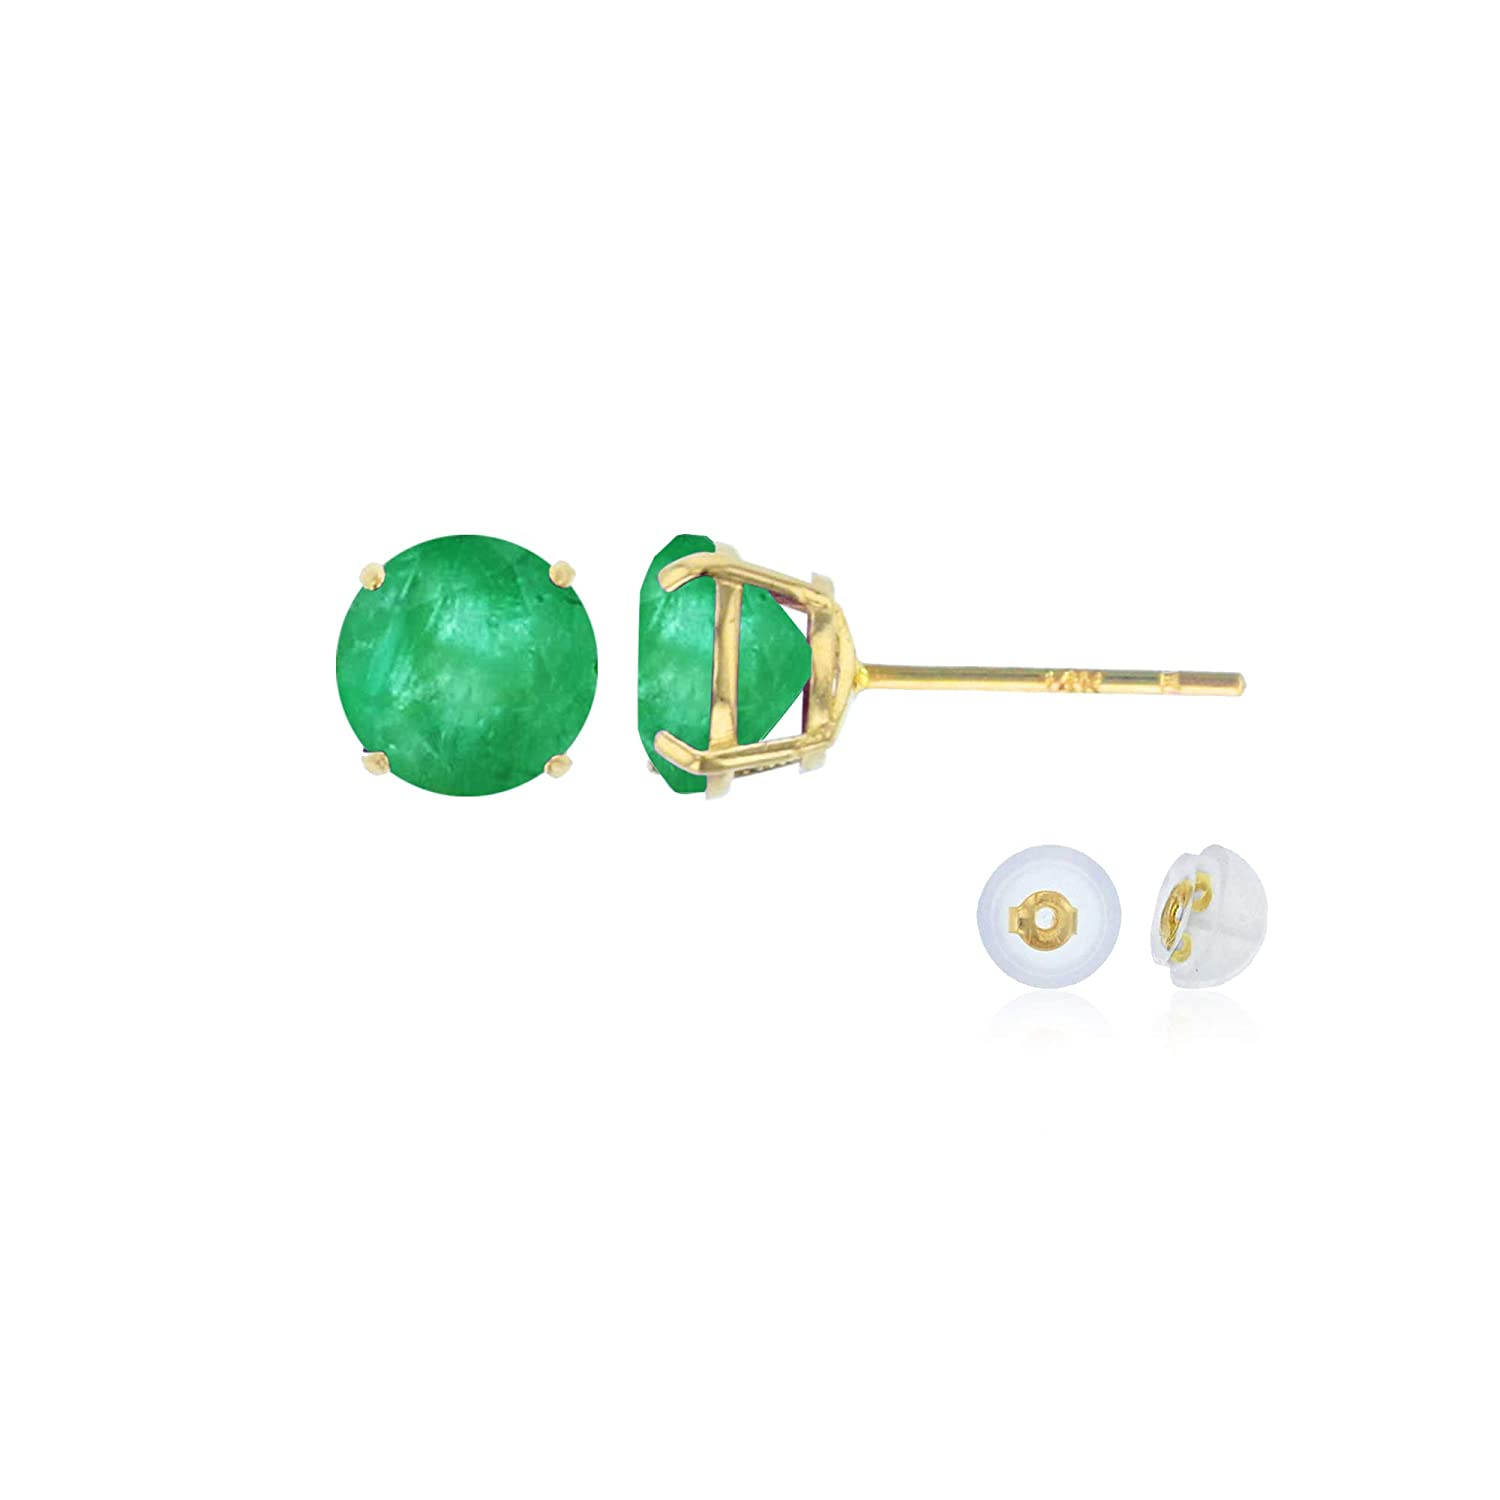 Gold Earrings For Women White or Rose Gold 4mm Round Genuine Gemstone Birthstone Stud Earrings Solid 14K Yellow Prong Set Natural Gemstones Solid Gold